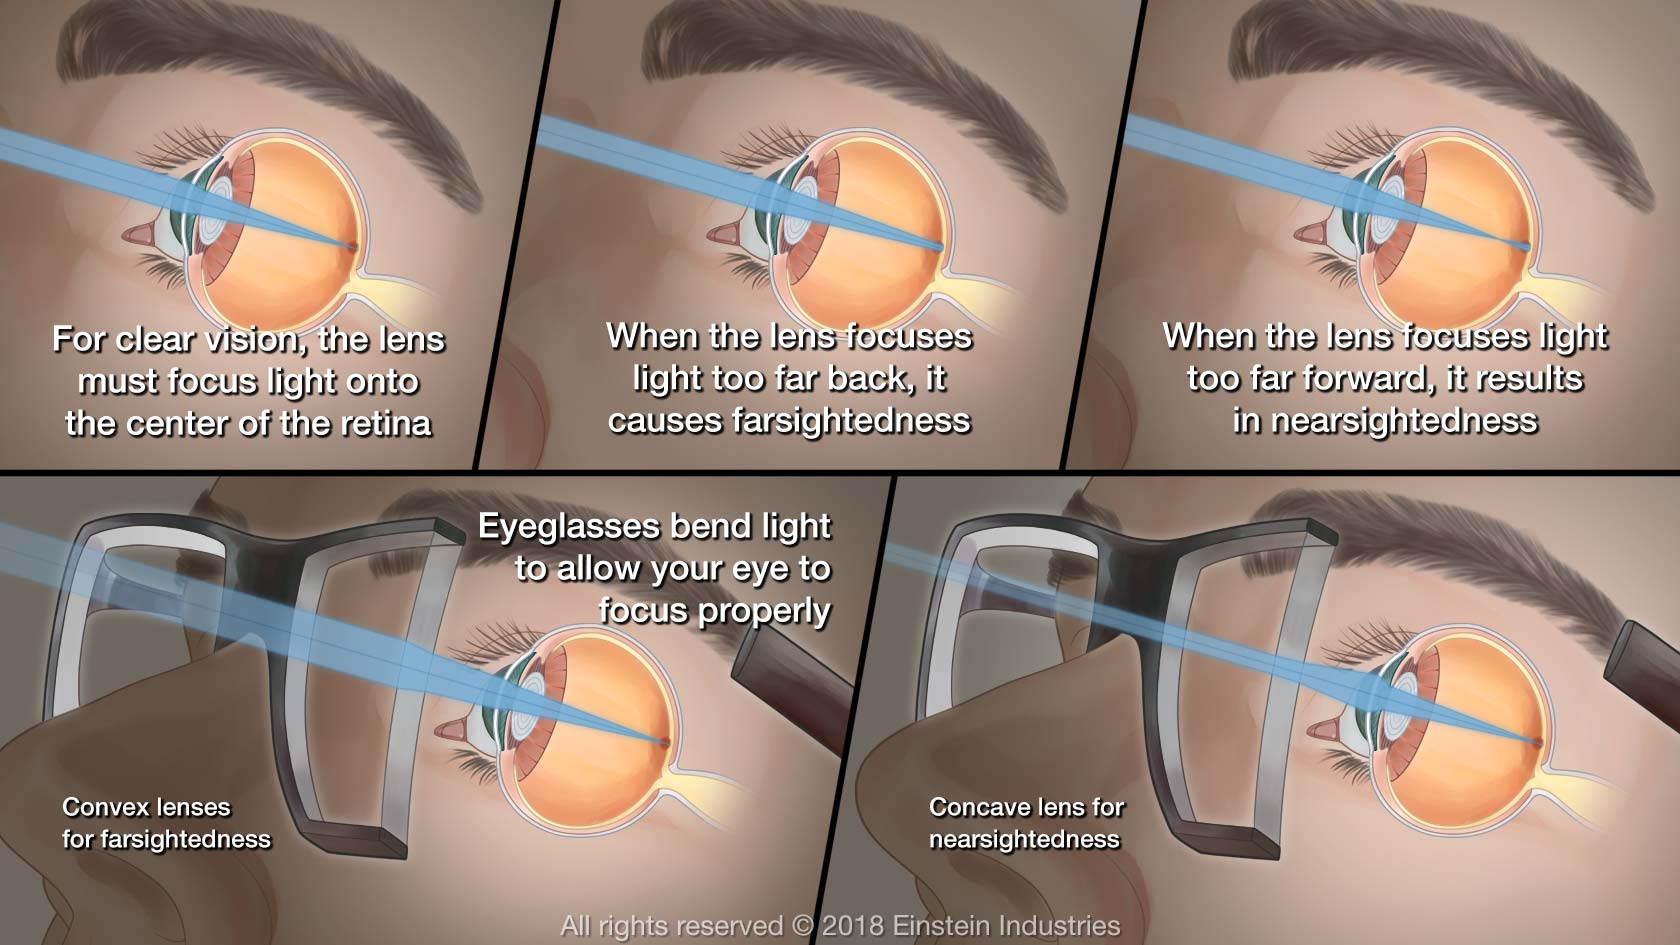 Illustration showing how glasses work